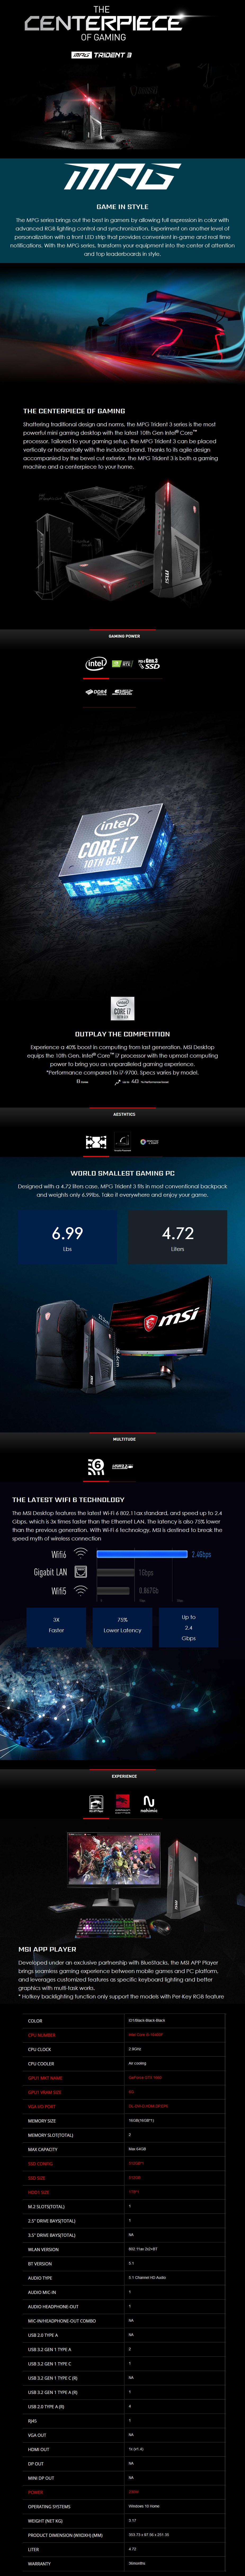 MSI Trident 3 Compact Gaming PC i5-10400F 16GB 512GB + 1TB GTX1660 Win10 - Overview 1